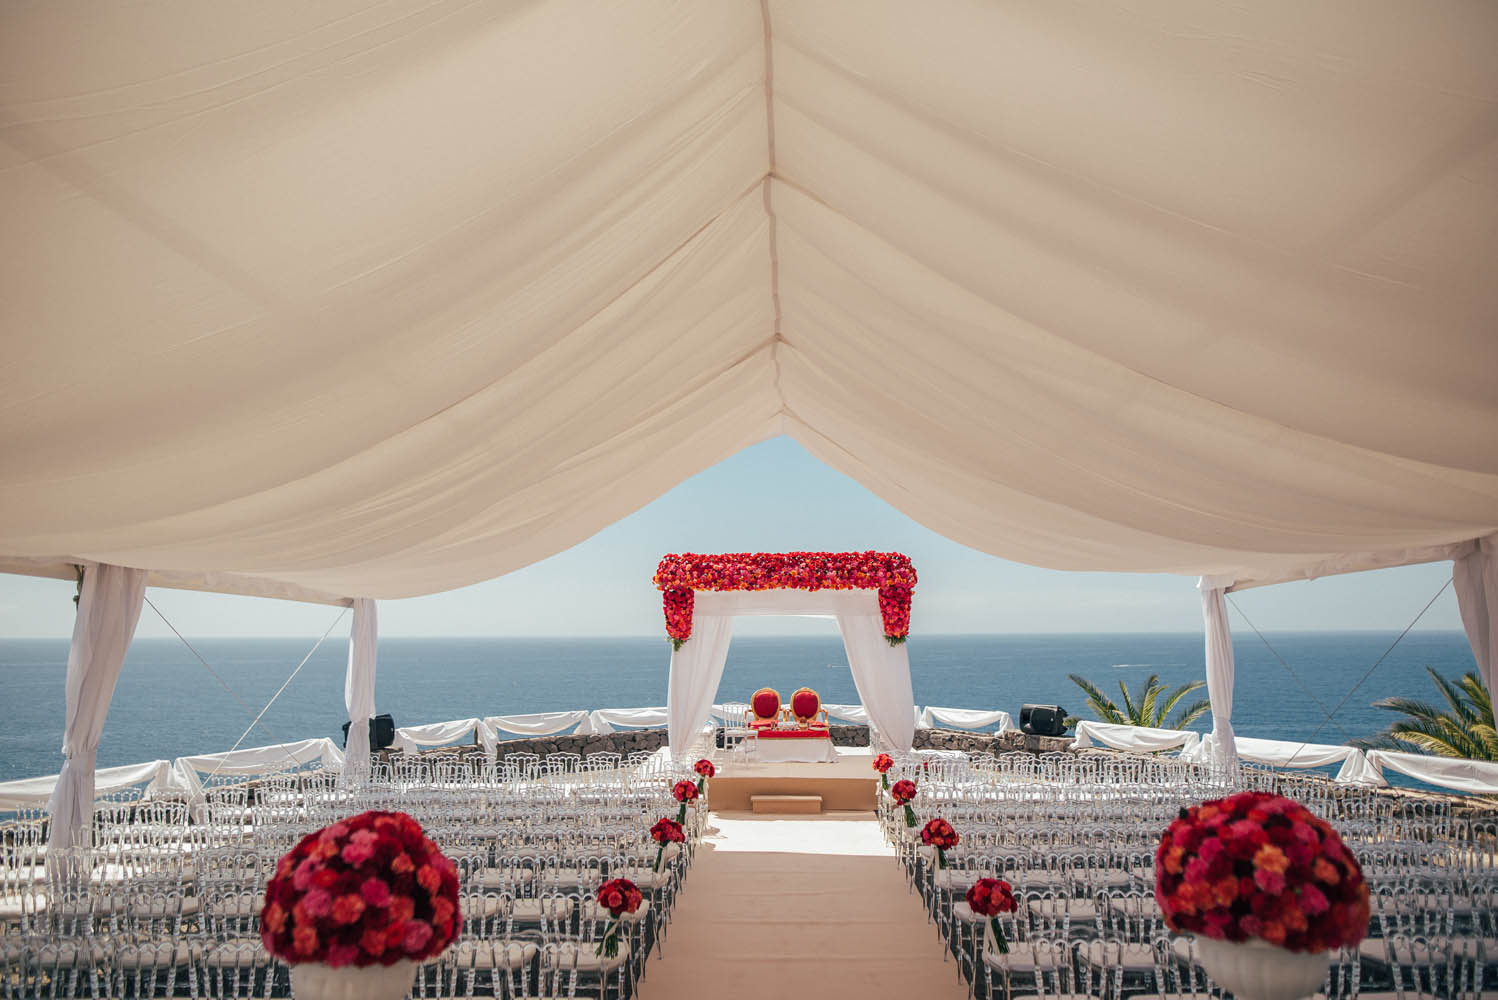 floral white mandap with red flowers in white wedding decor theme - white tent and white chairs for guest seating